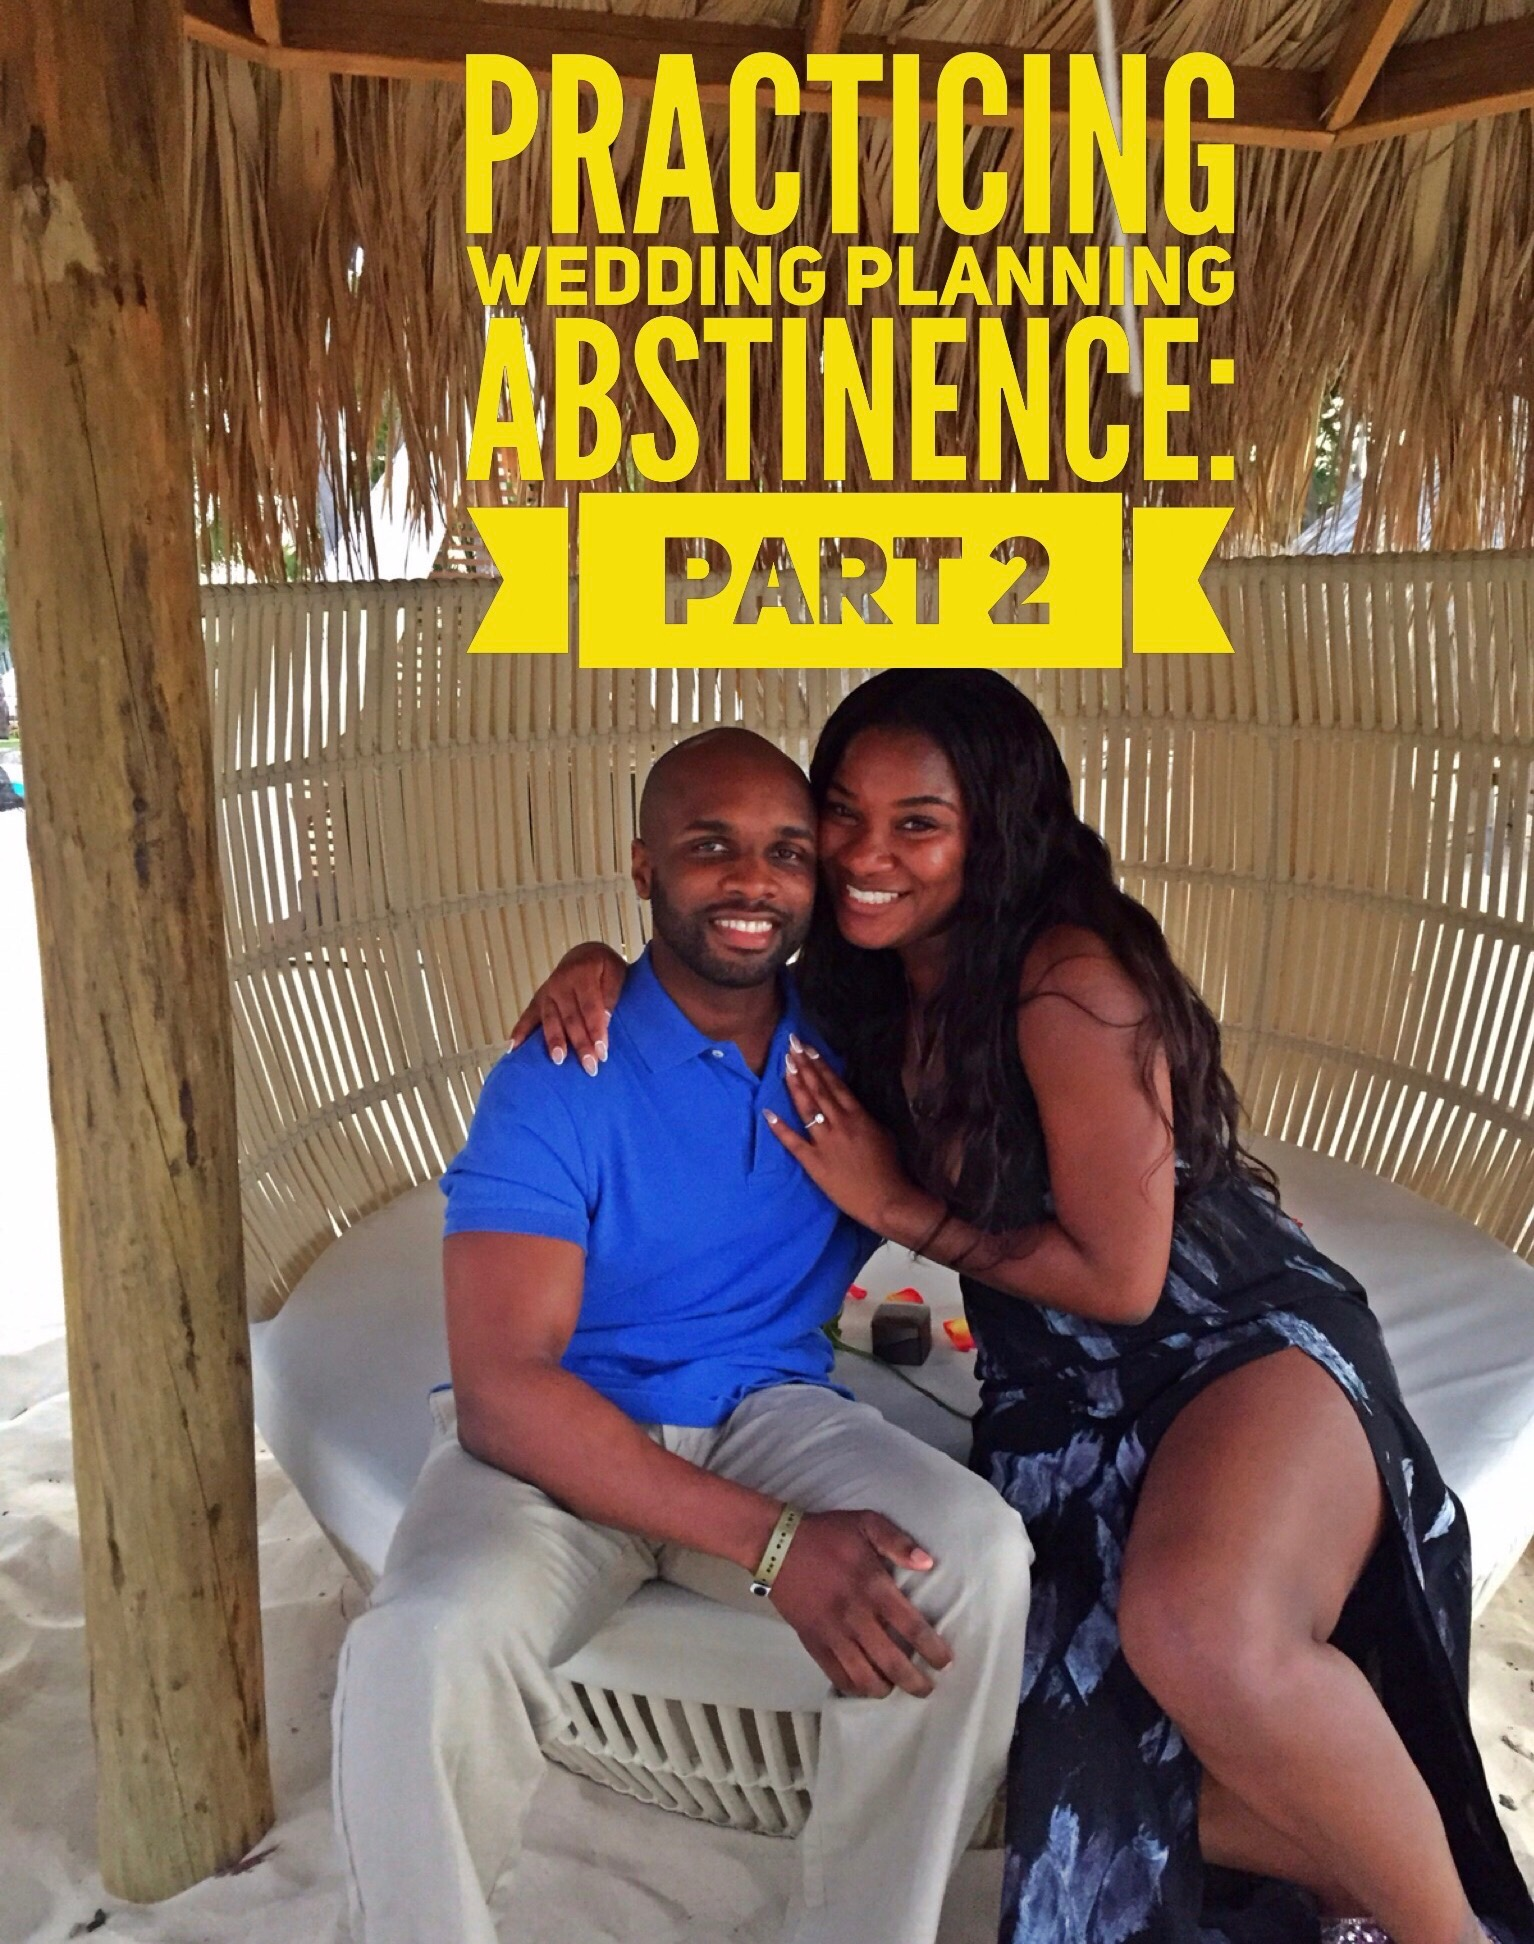 Black Destination Wedding Bride - Wedding Abstinence Pt.2